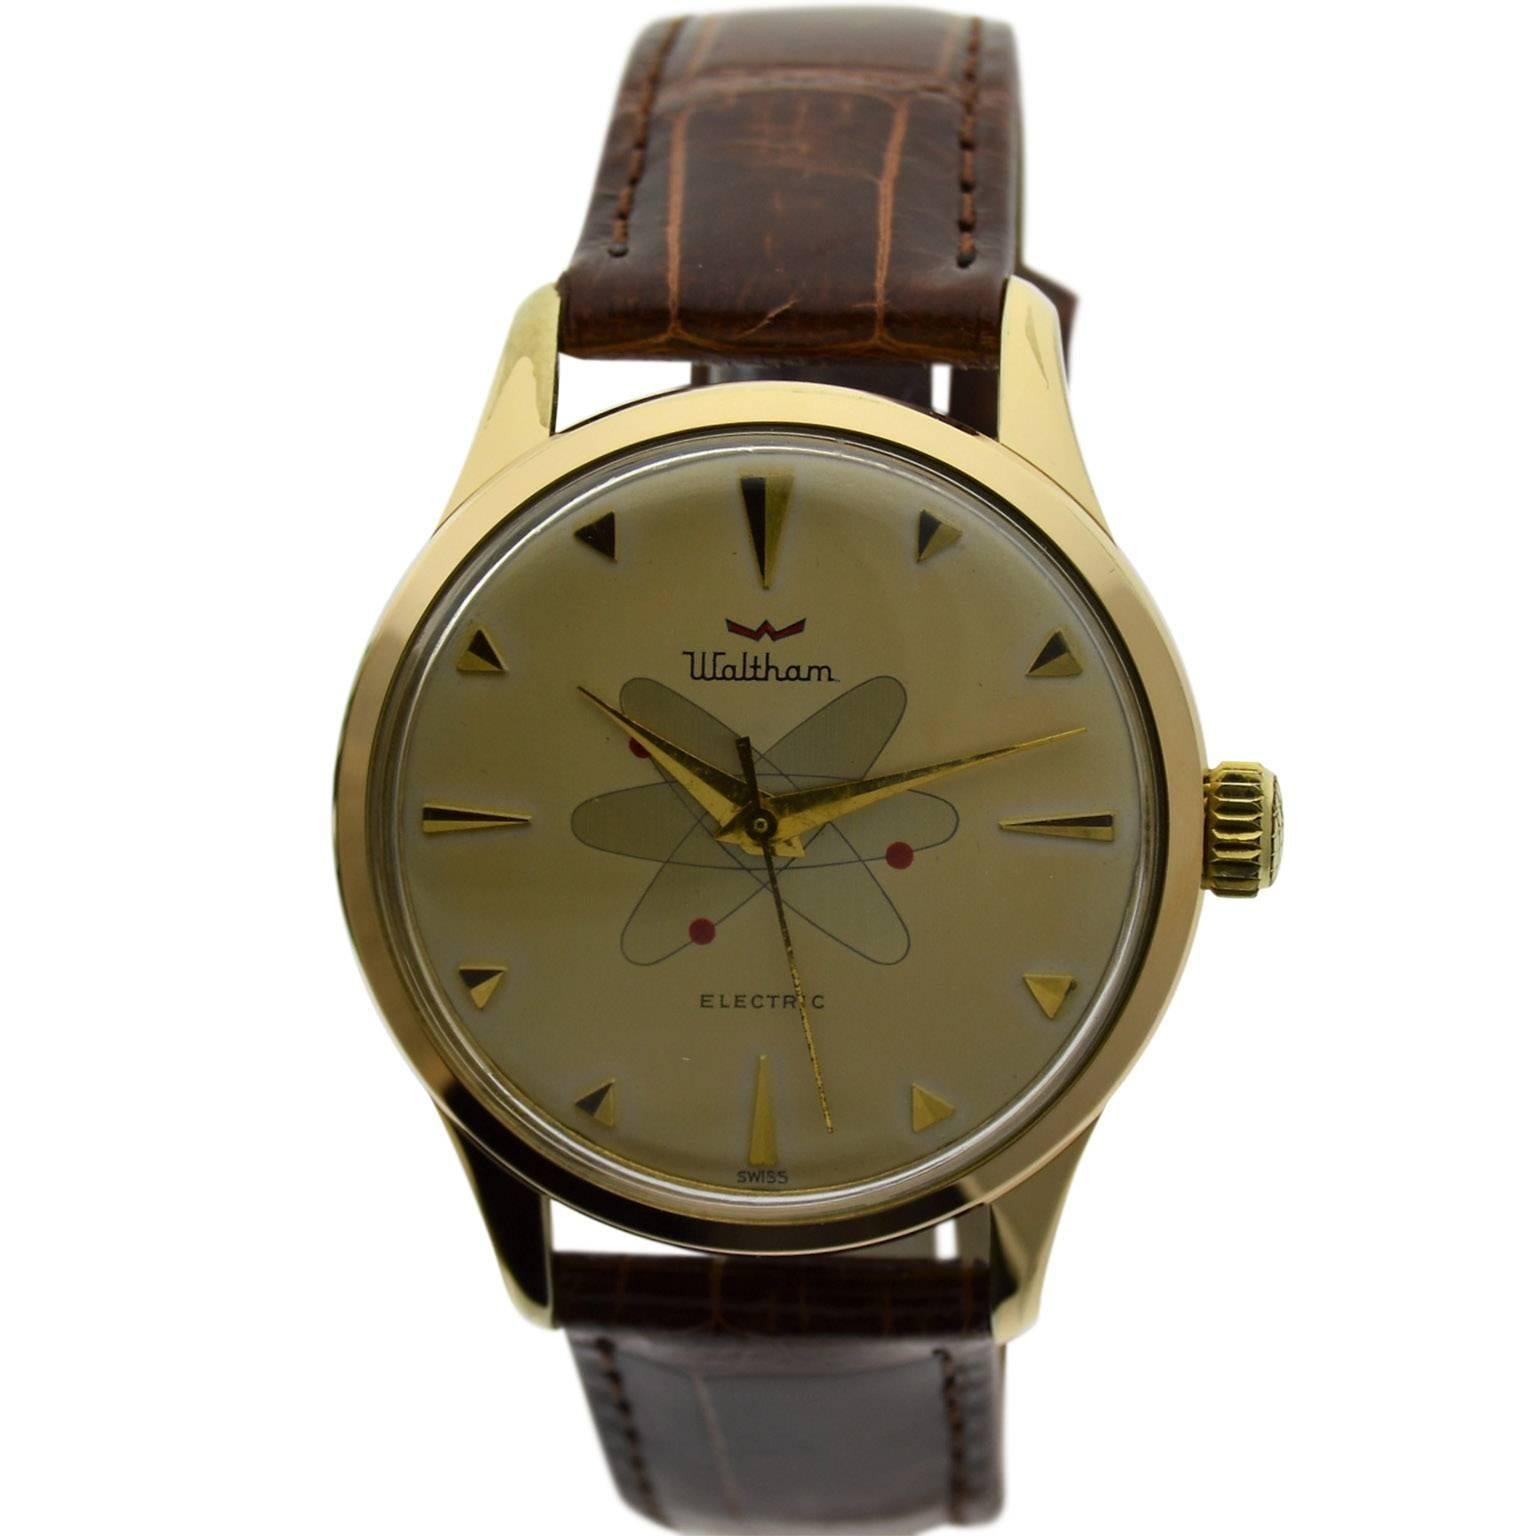 Waltham Yellow Gold Filled Mid Century Experimental Electromechanical Watch